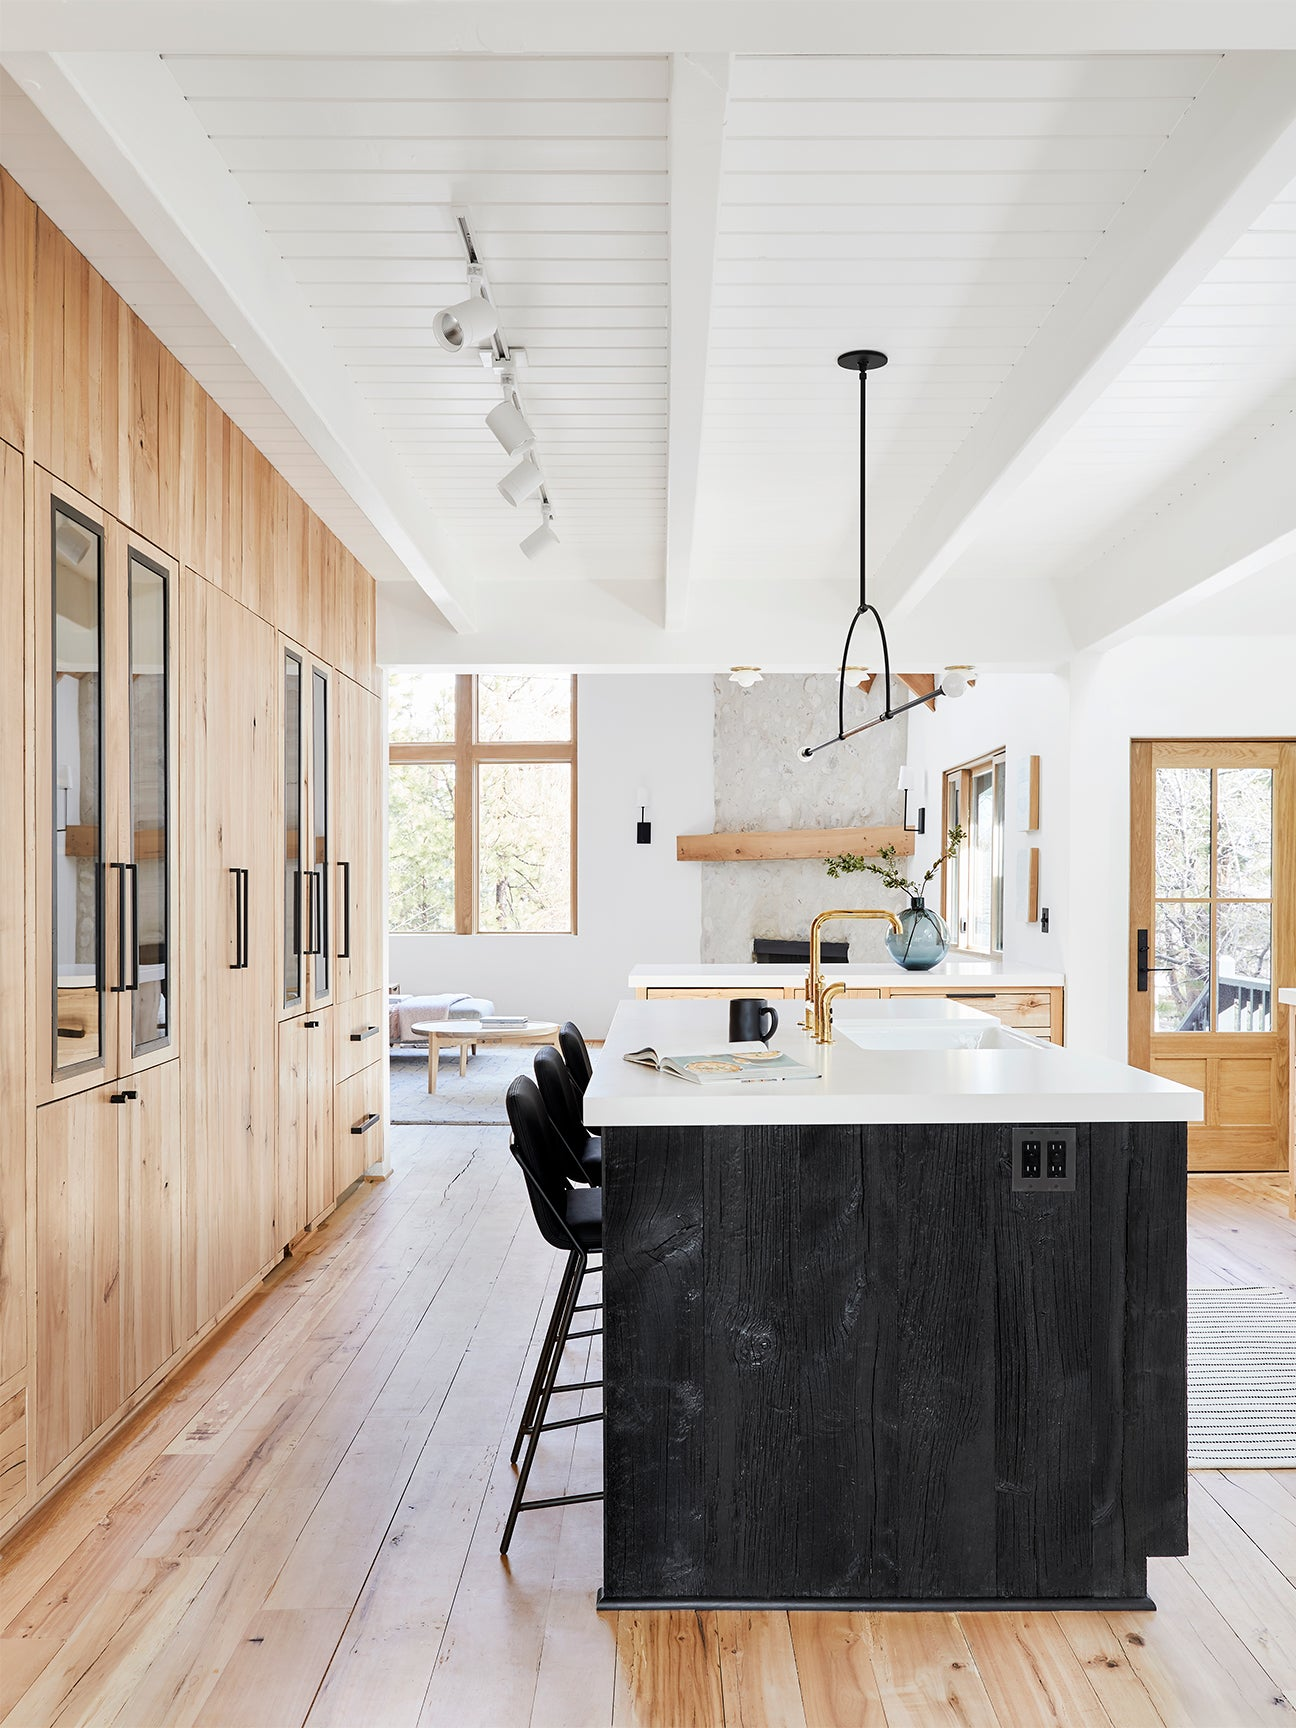 7 Next-Level Takes on the Two-Tone Kitchen Cabinet Trend